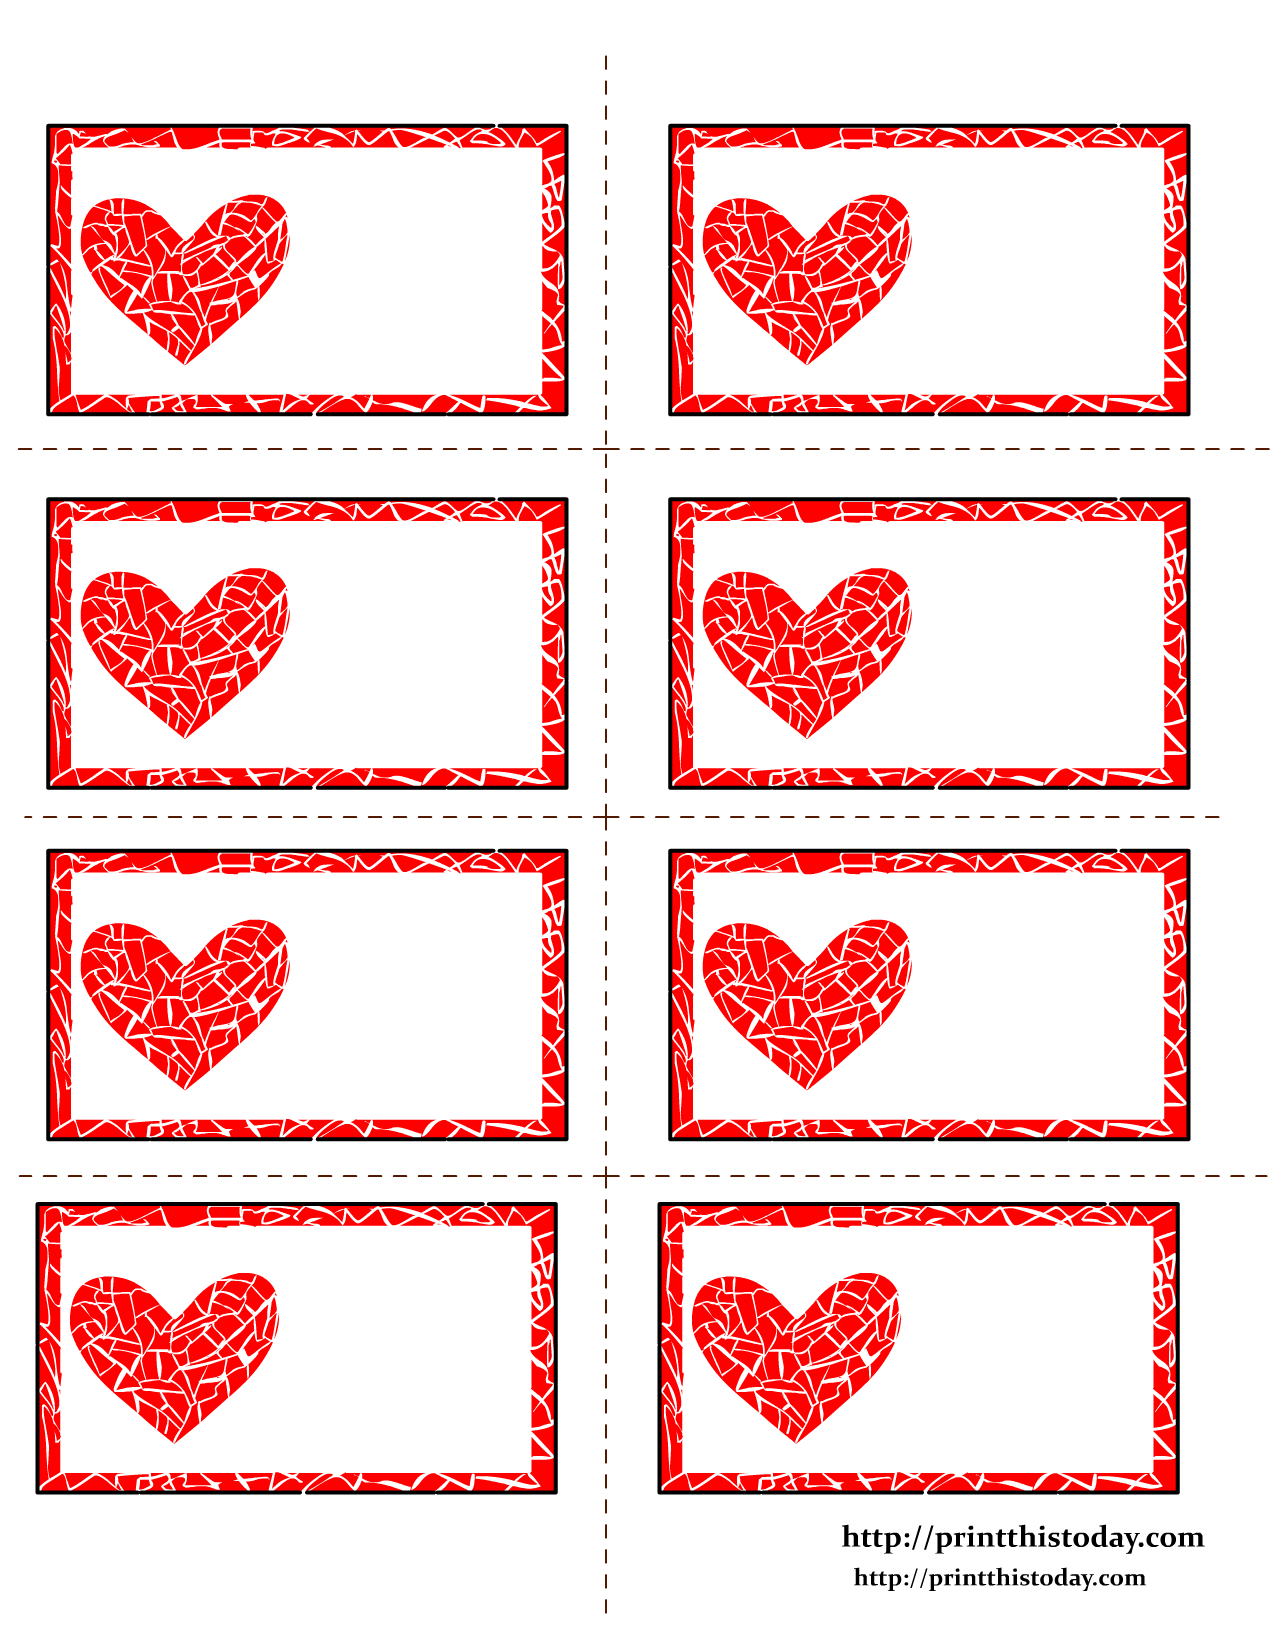 Free Printable Valentines Day Labelsann   Sunday School - Free Printable Heart Labels